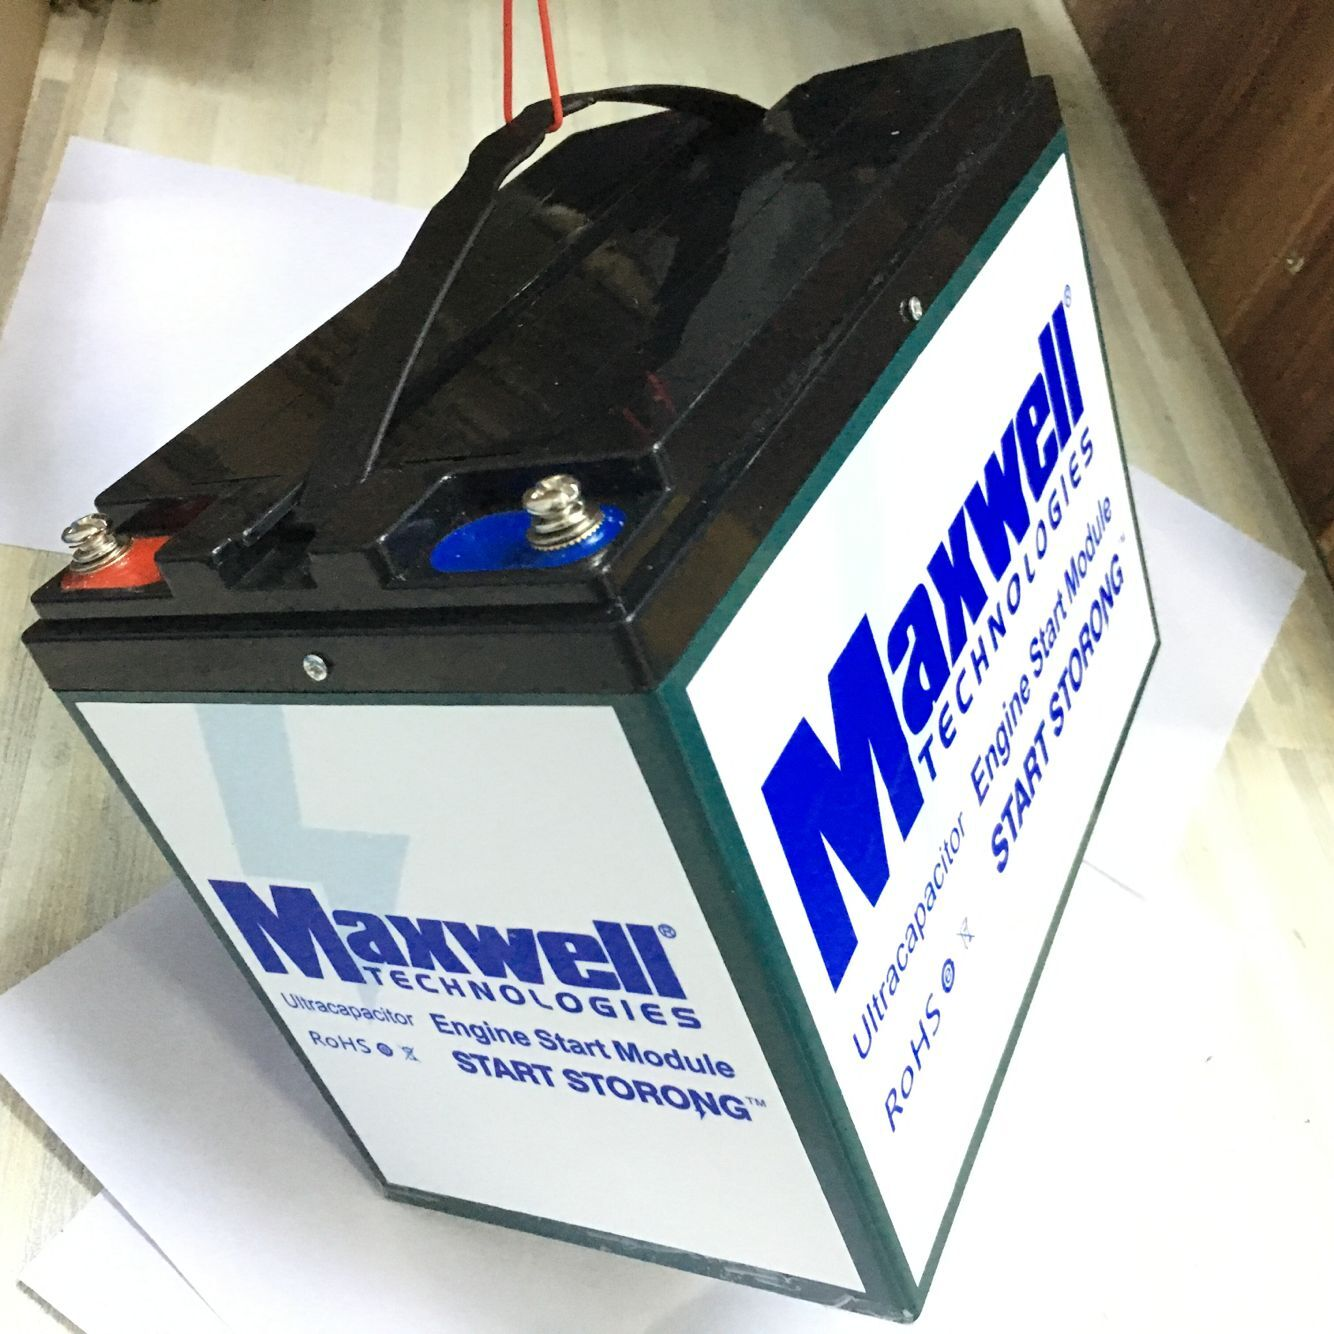 Maxwell 16V 500F super capacitor car battery 12v graphene audio capacitor  battery pack with plastic case, View super capacitor battery , maxwell